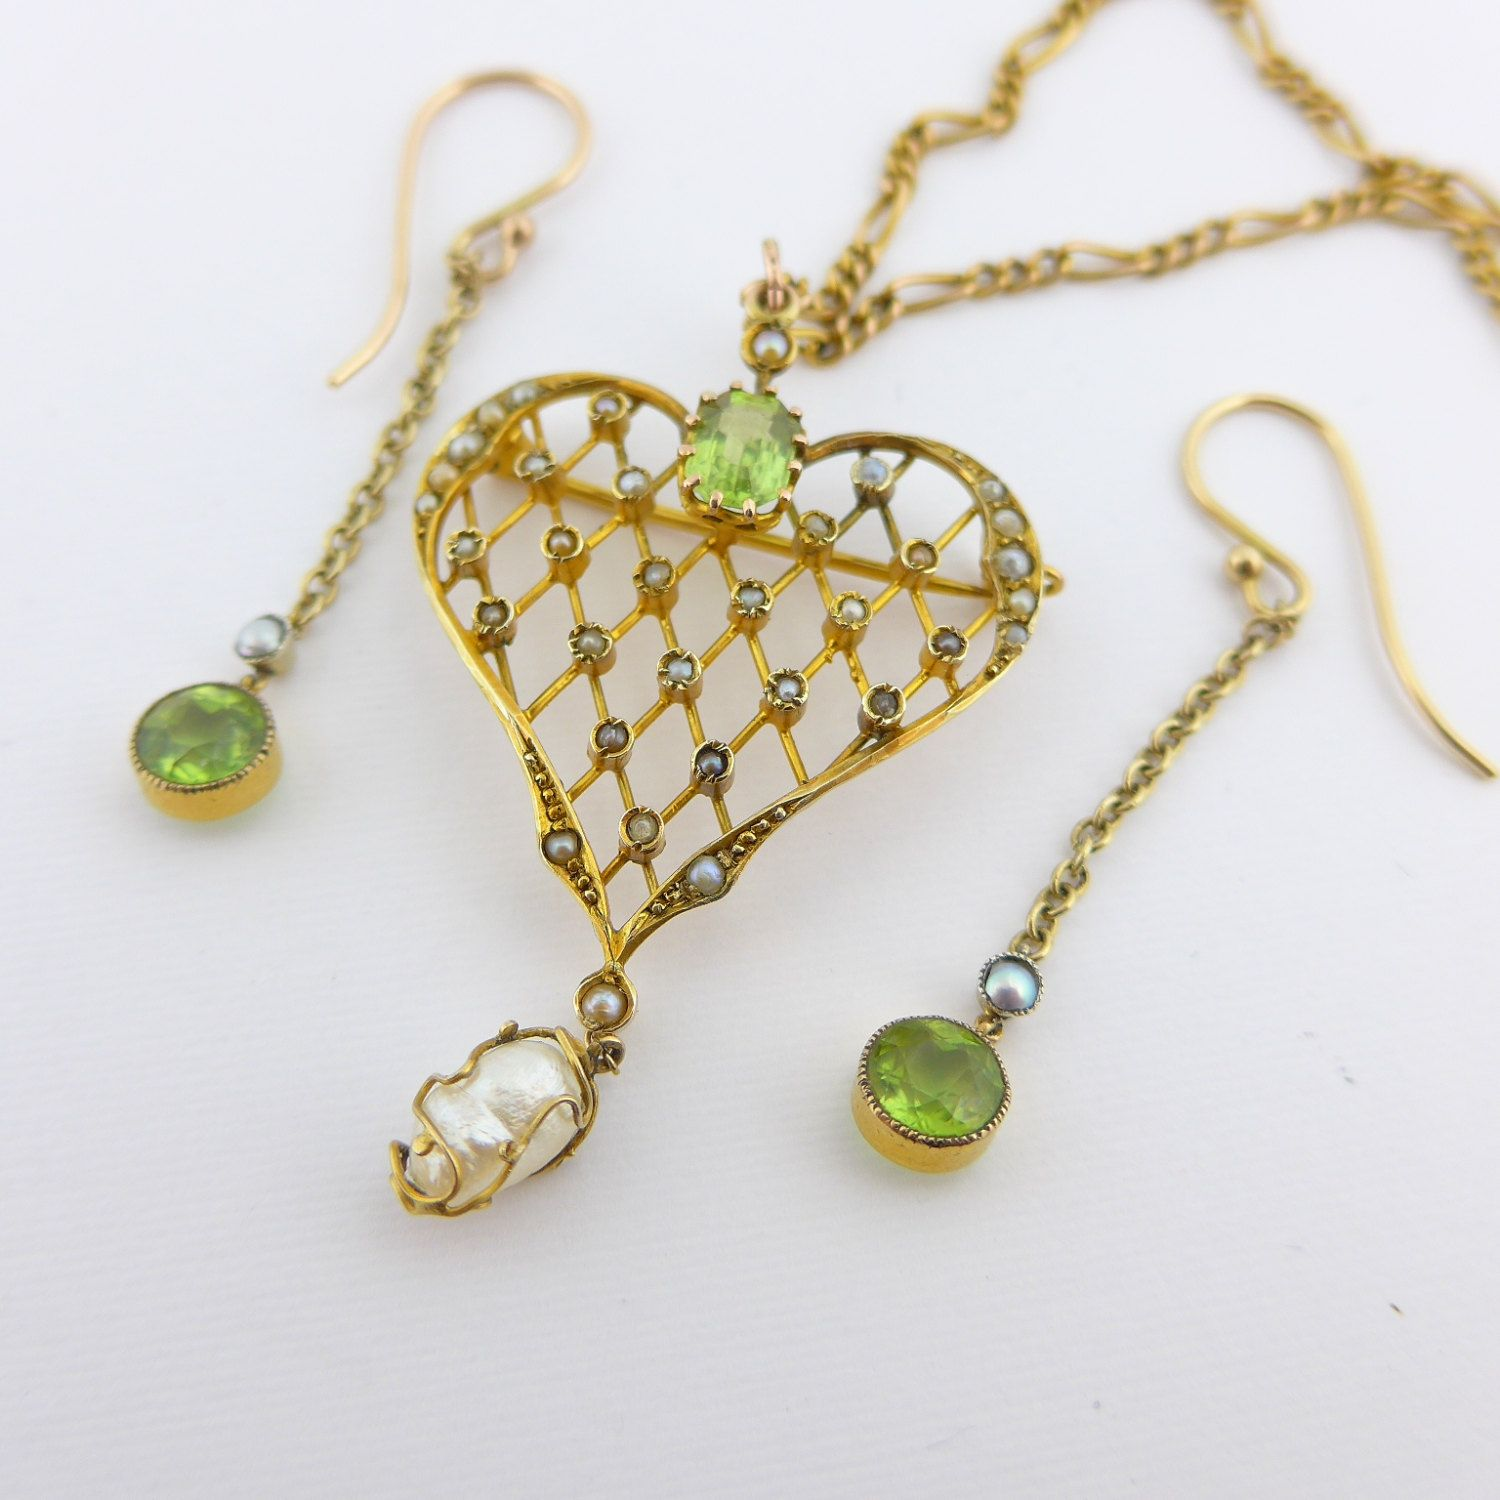 Antique art nouveau gold pearl u peridot heart pendant brooch and